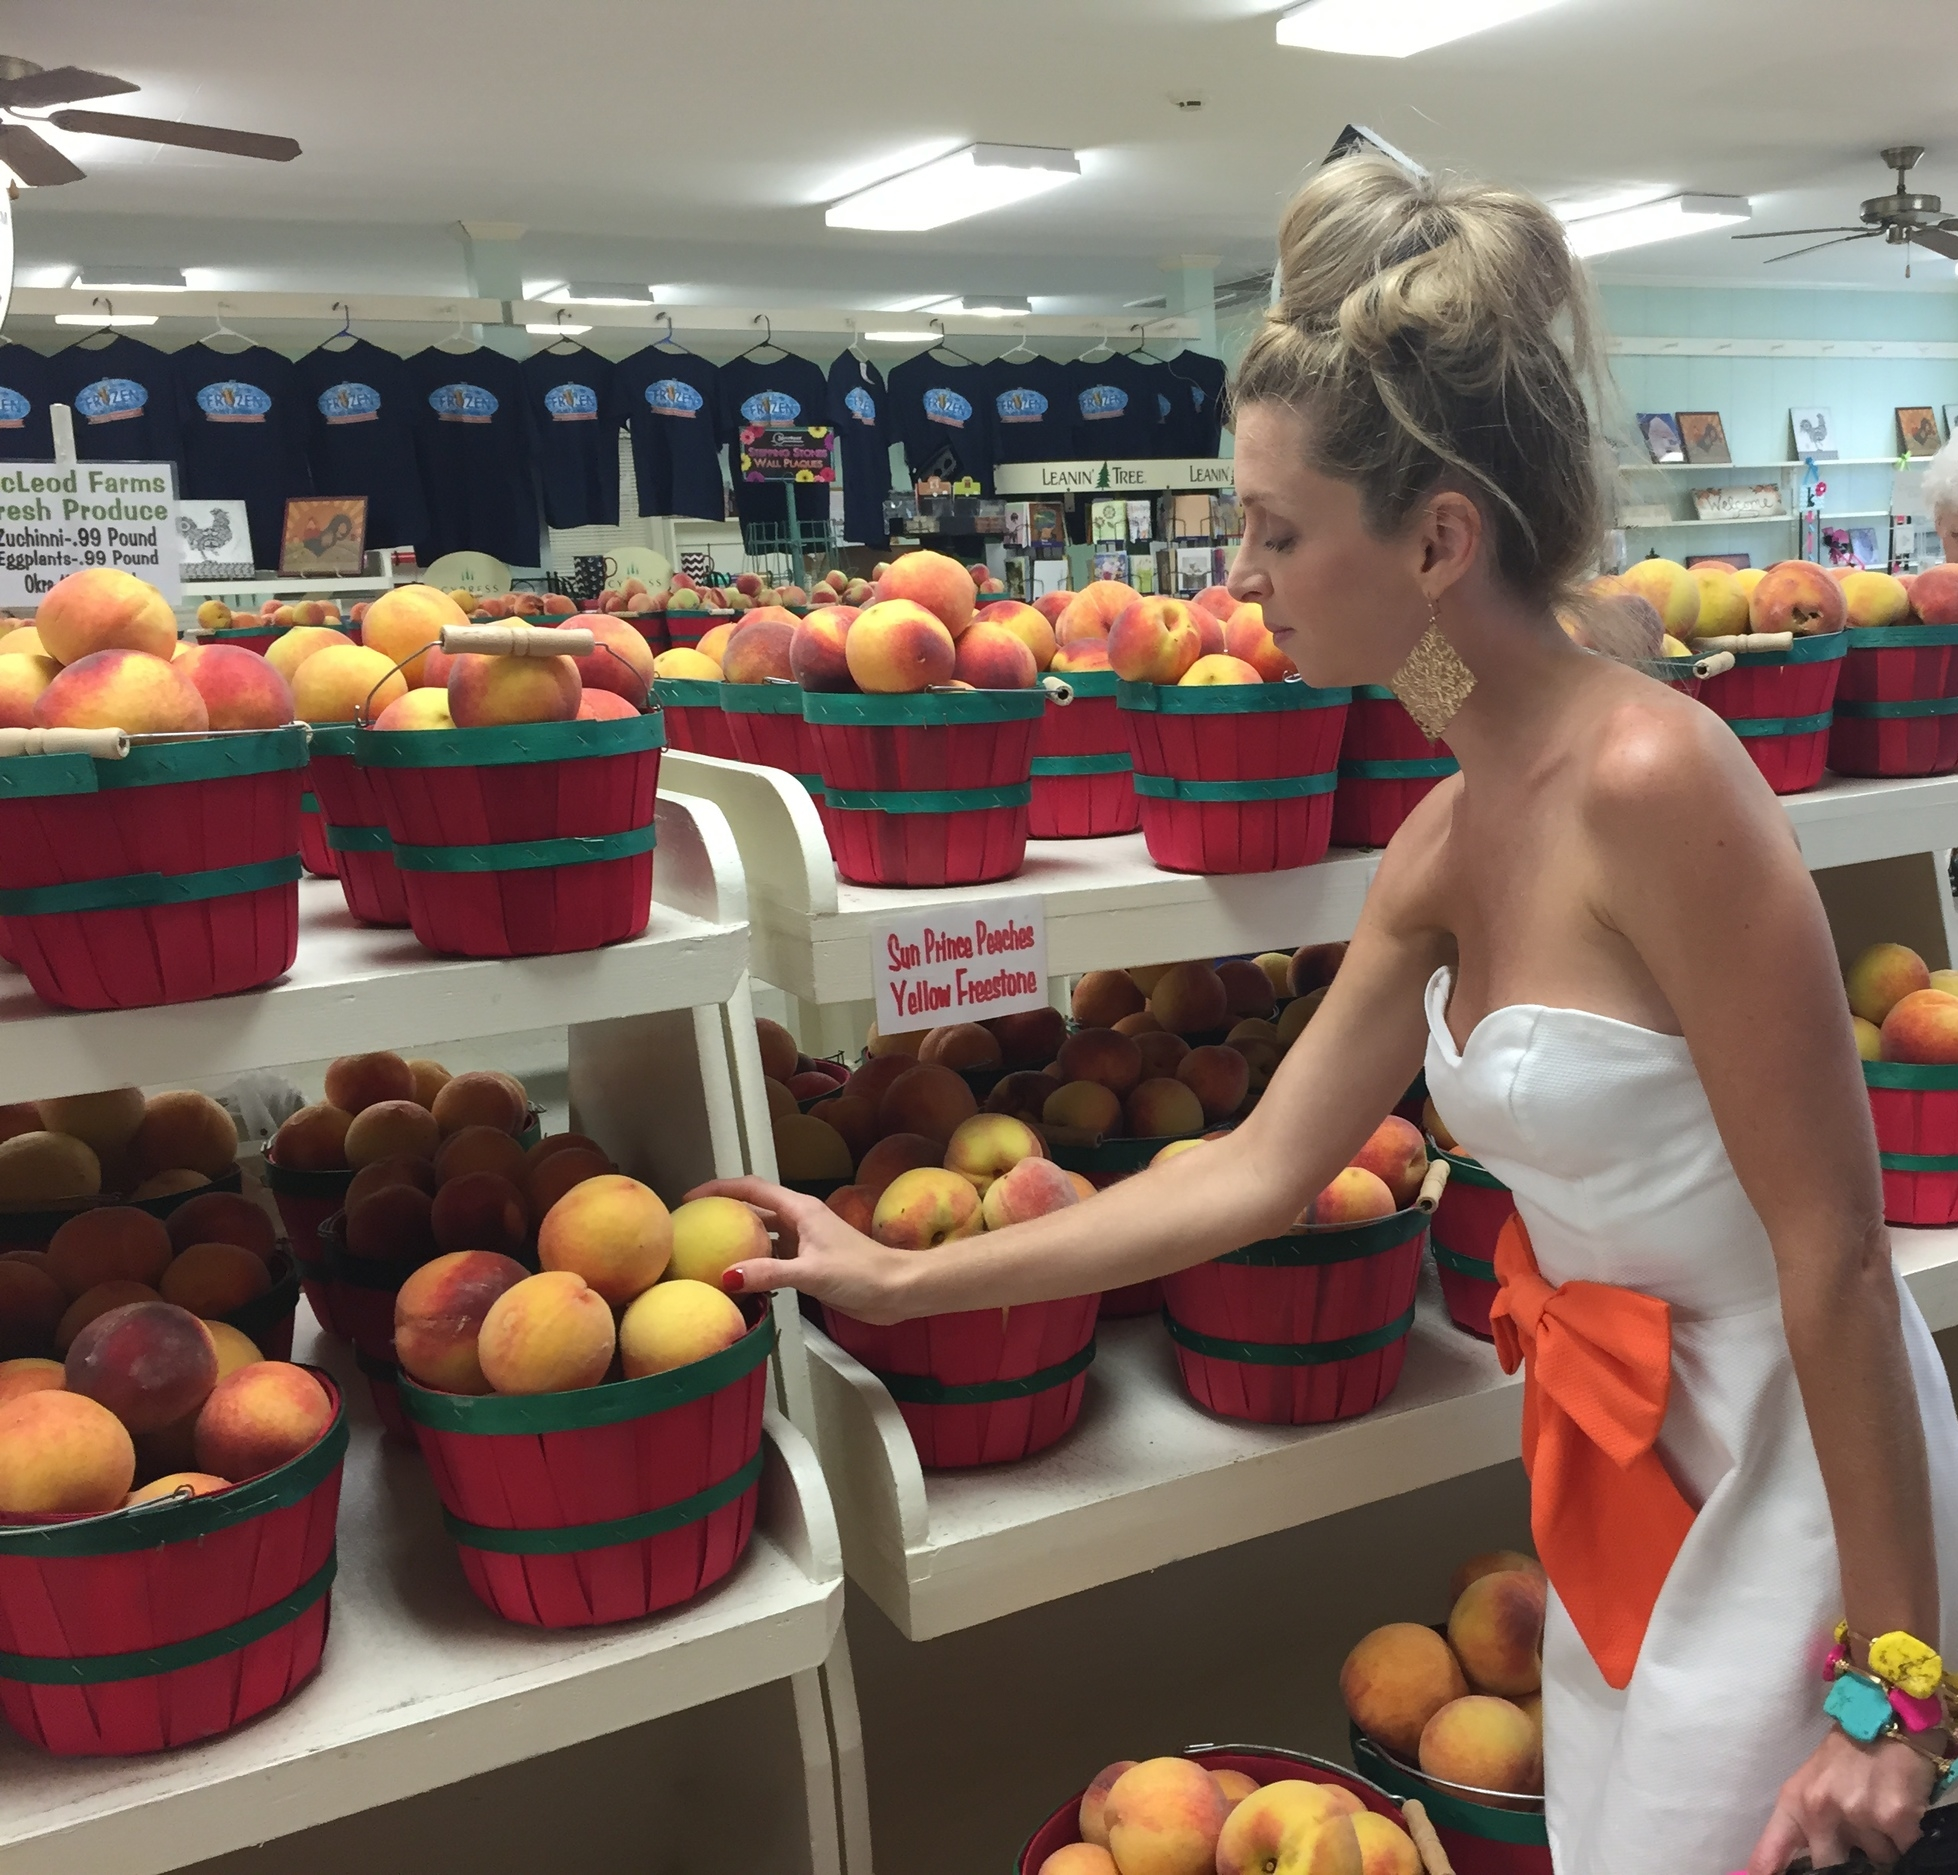 Picking out the juiciest peach at McLeod Farms in McBee, SC.